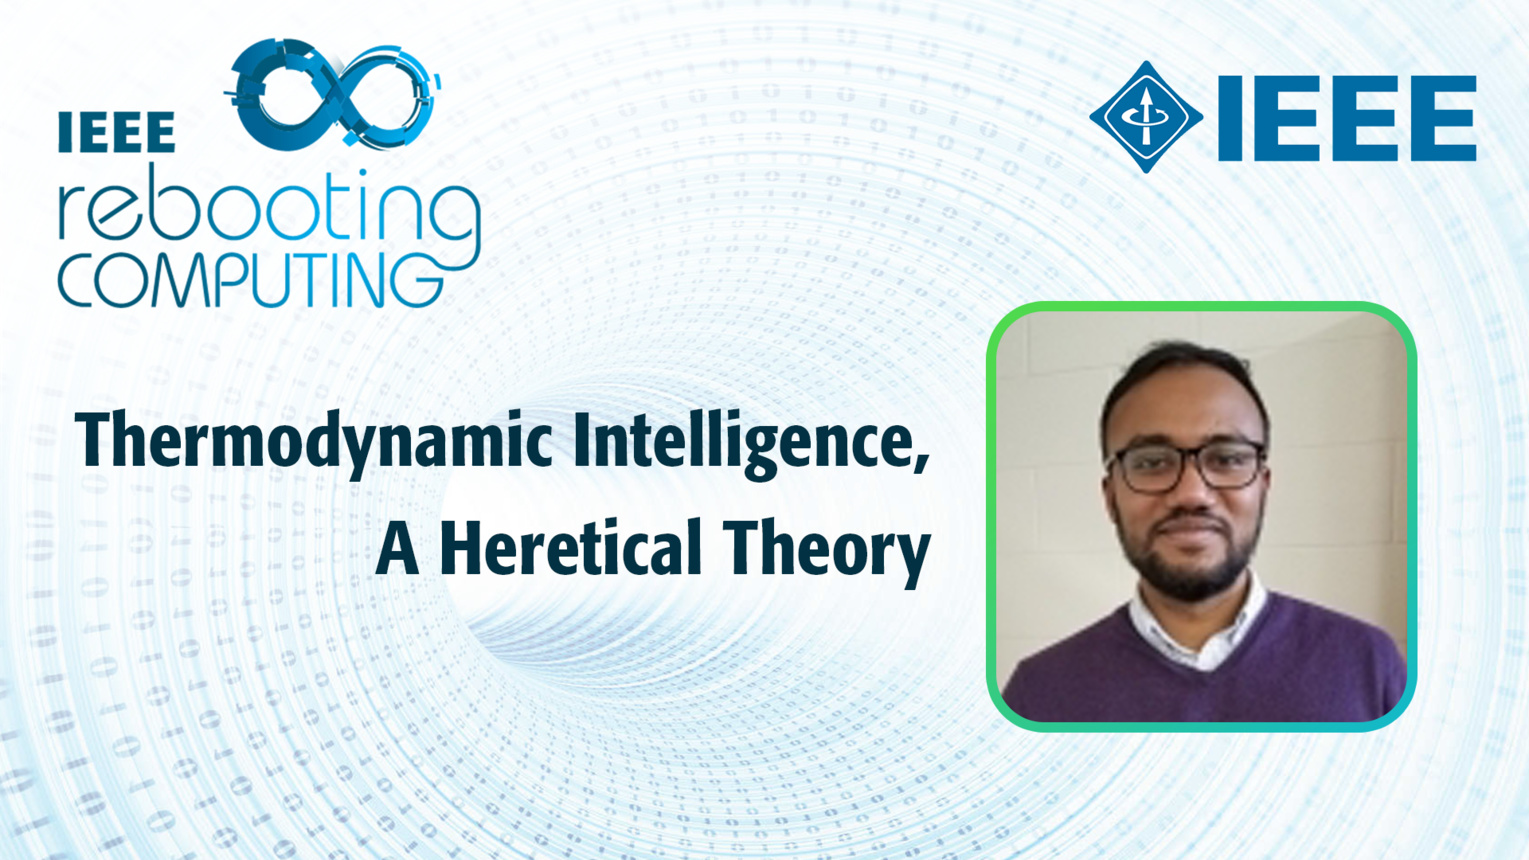 Thermodynamic Intelligence, A Heretical Theory - Natesh Ganesh - ICRC 2018